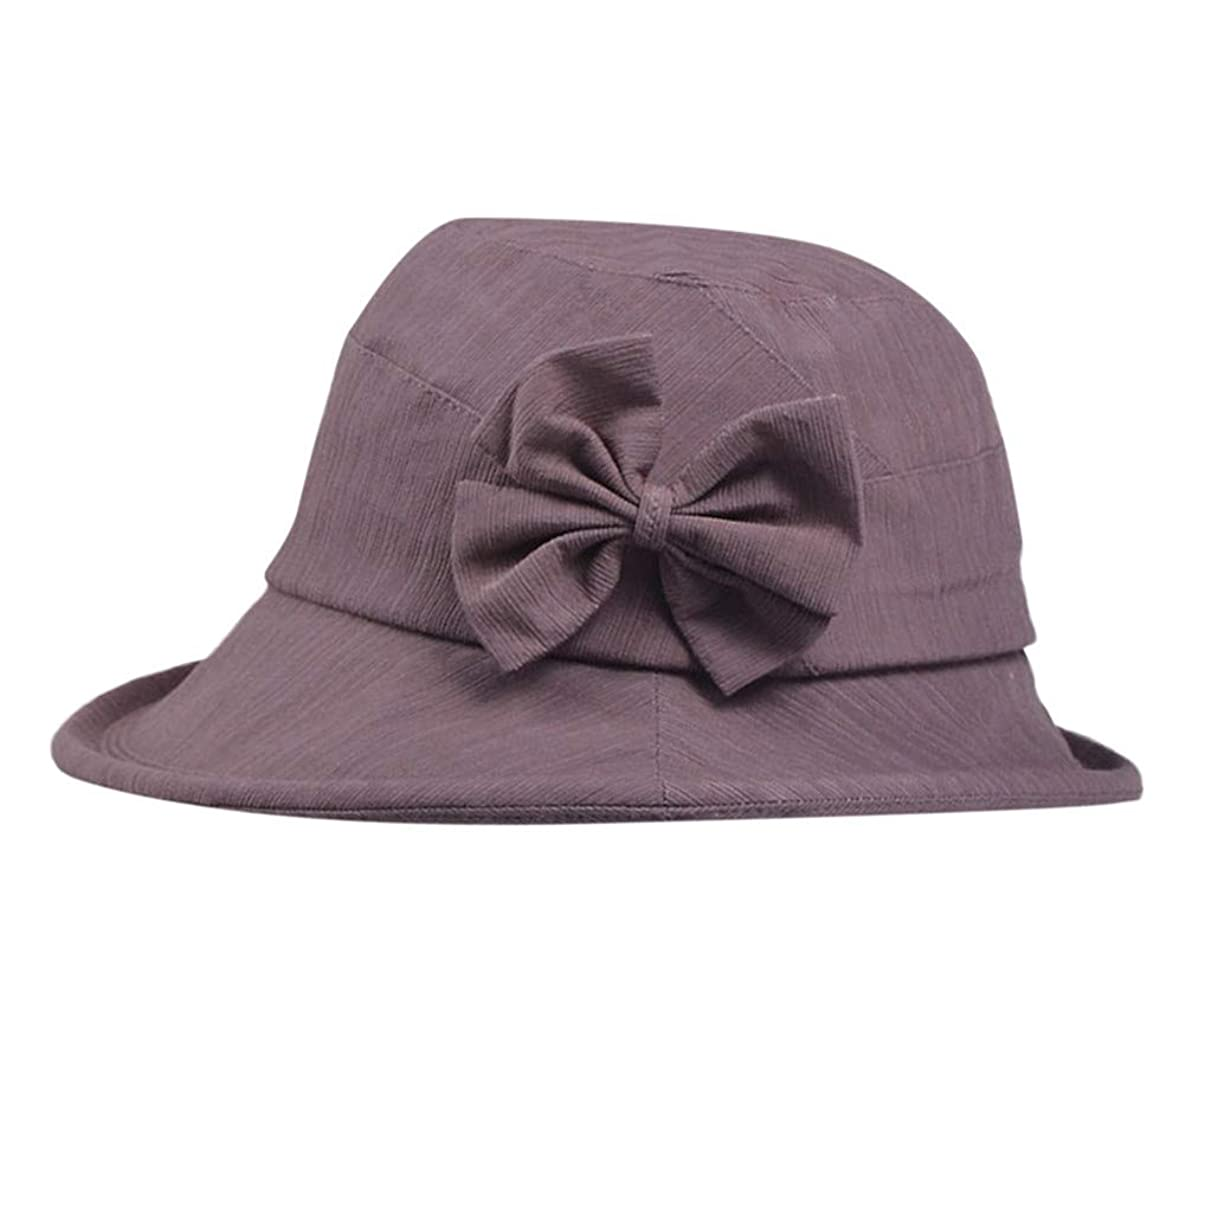 DDKK Hot New Sun Hats Women Wide Brimmed Floppy Foldable Bow-Knot UV Protection Summer Beach Hat Packable Visor